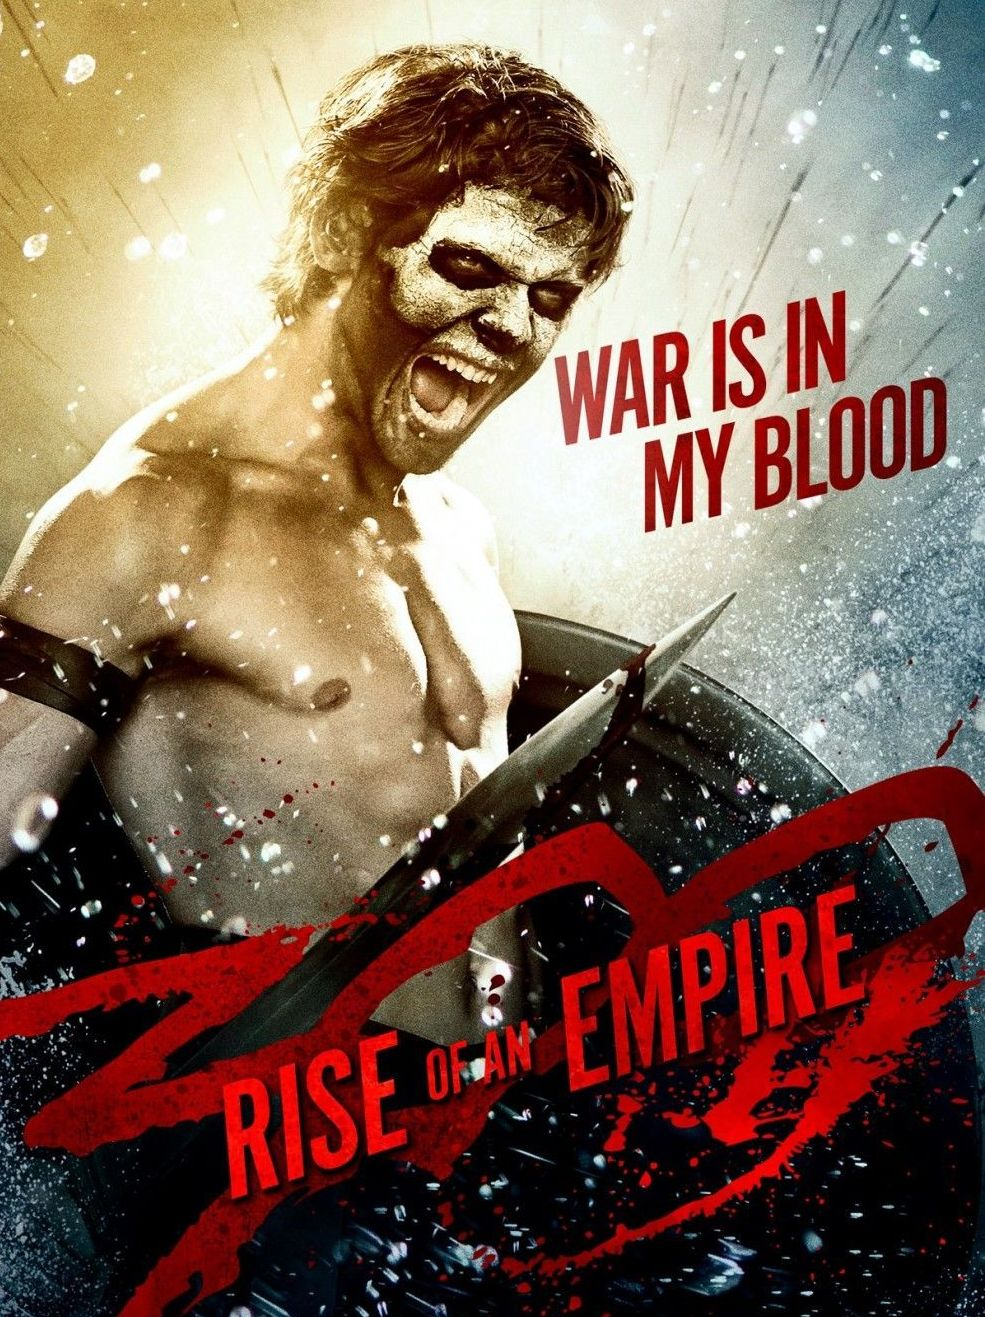 300 RISE OF AN EMPIRE (12).jpg